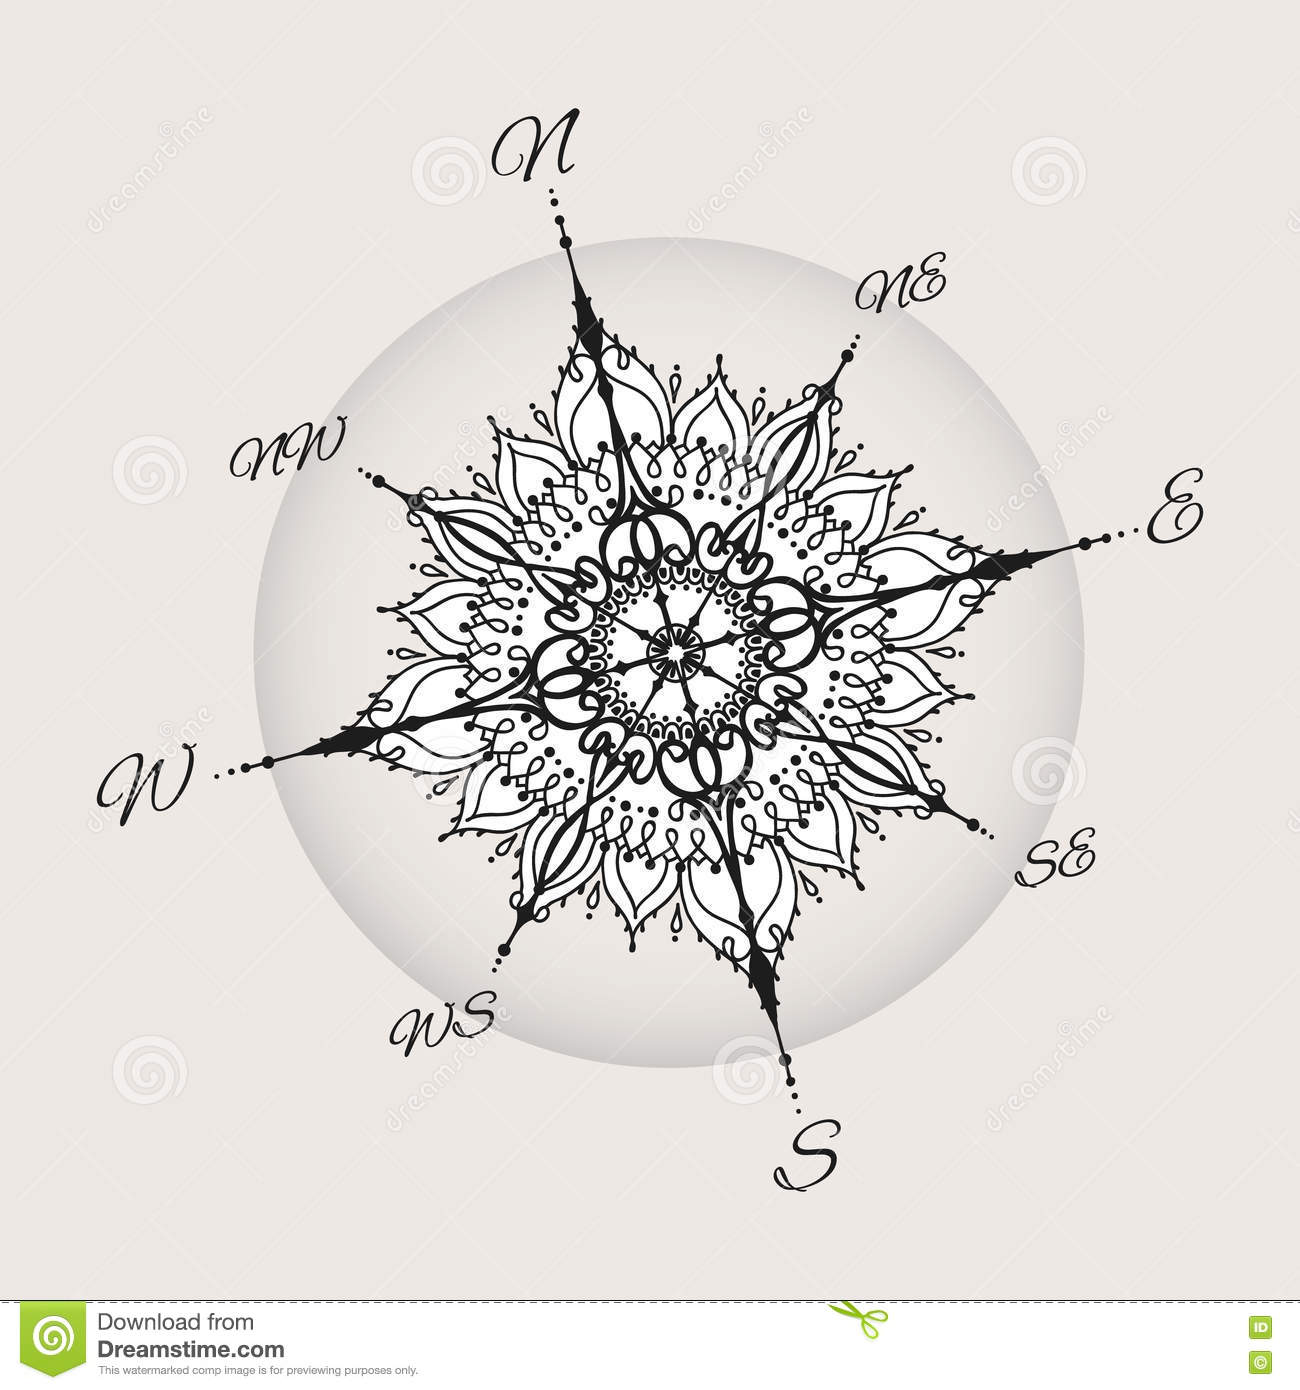 Graphic Wind Rose Compass Drawn With Floral Elements Stock Vector ...